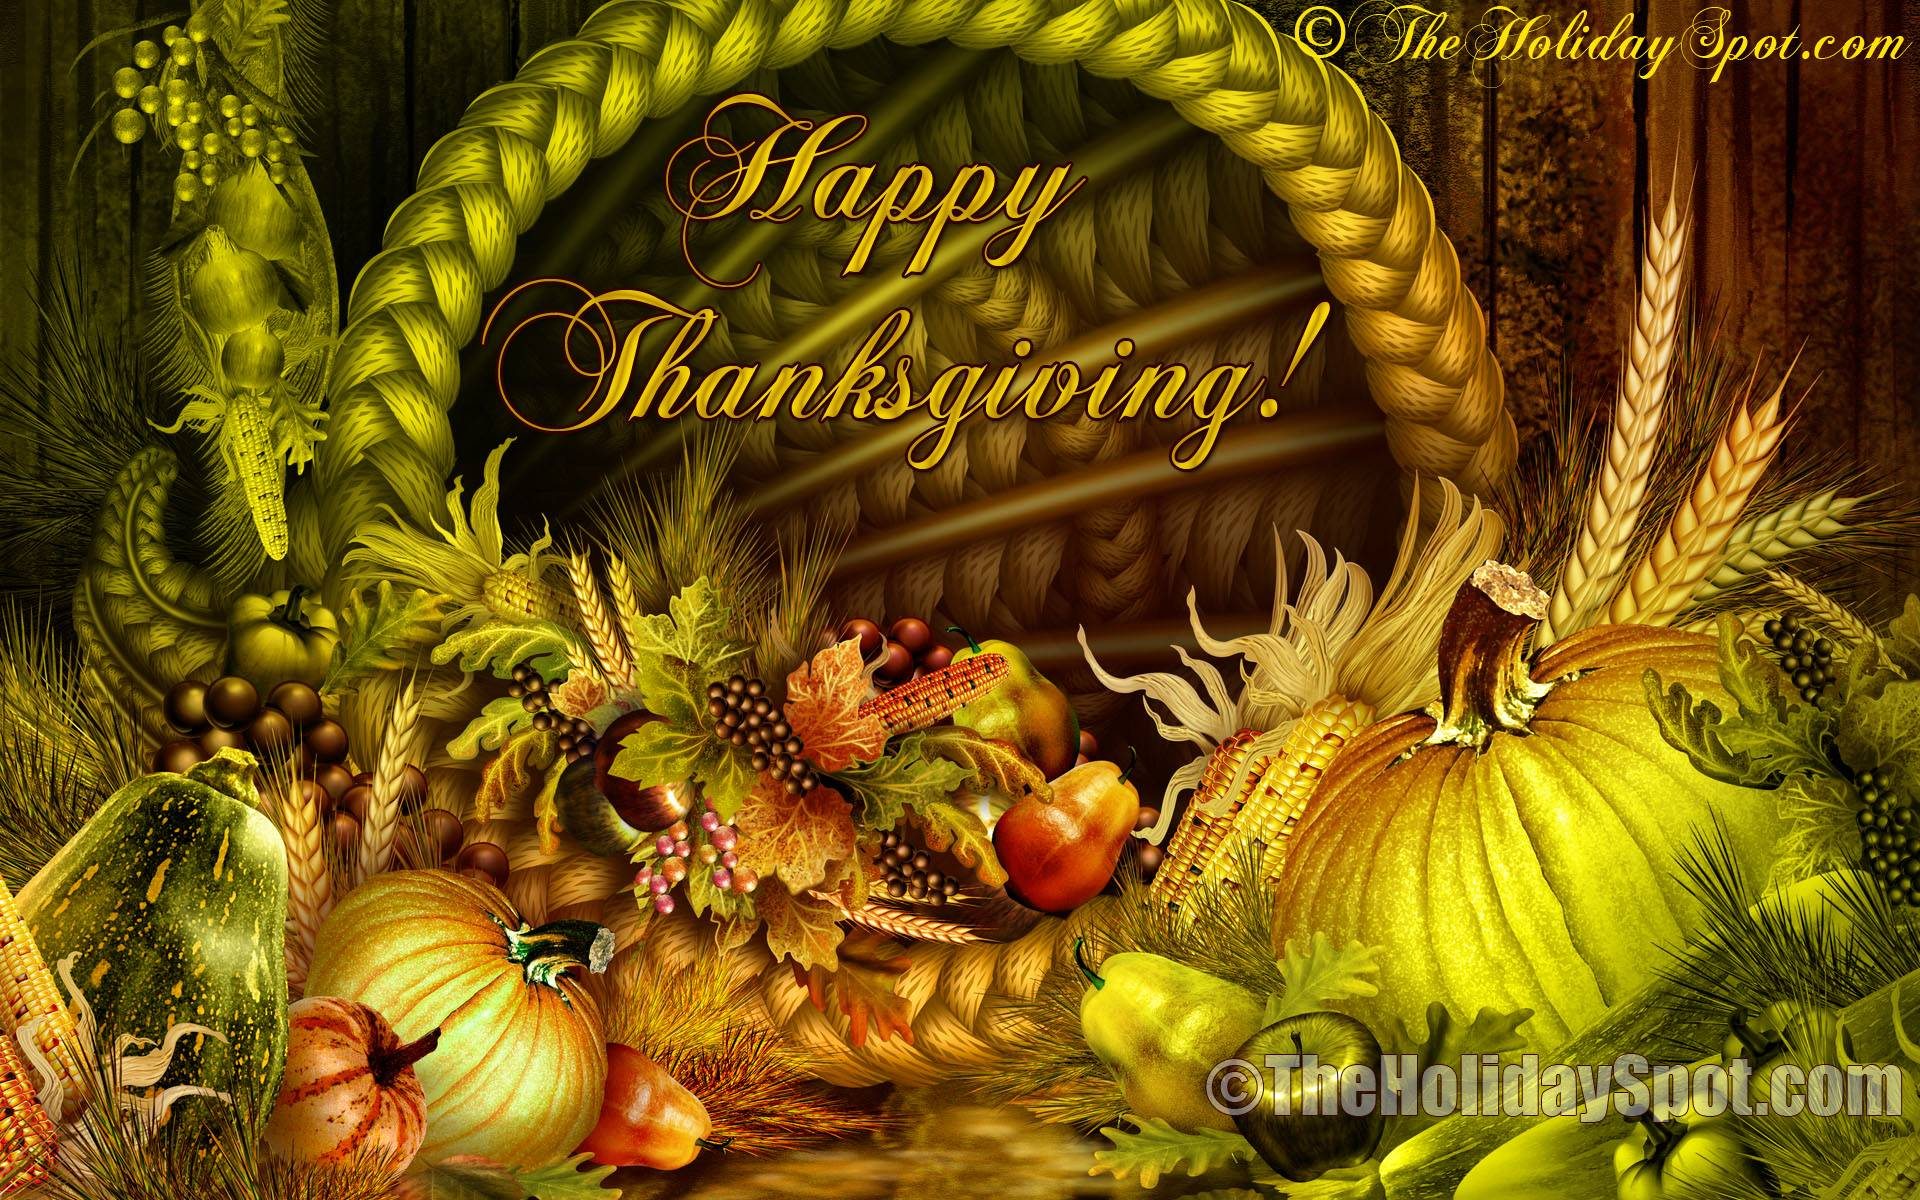 Free Desktop Wallpapers Thanksgiving  Wallpaper Cave